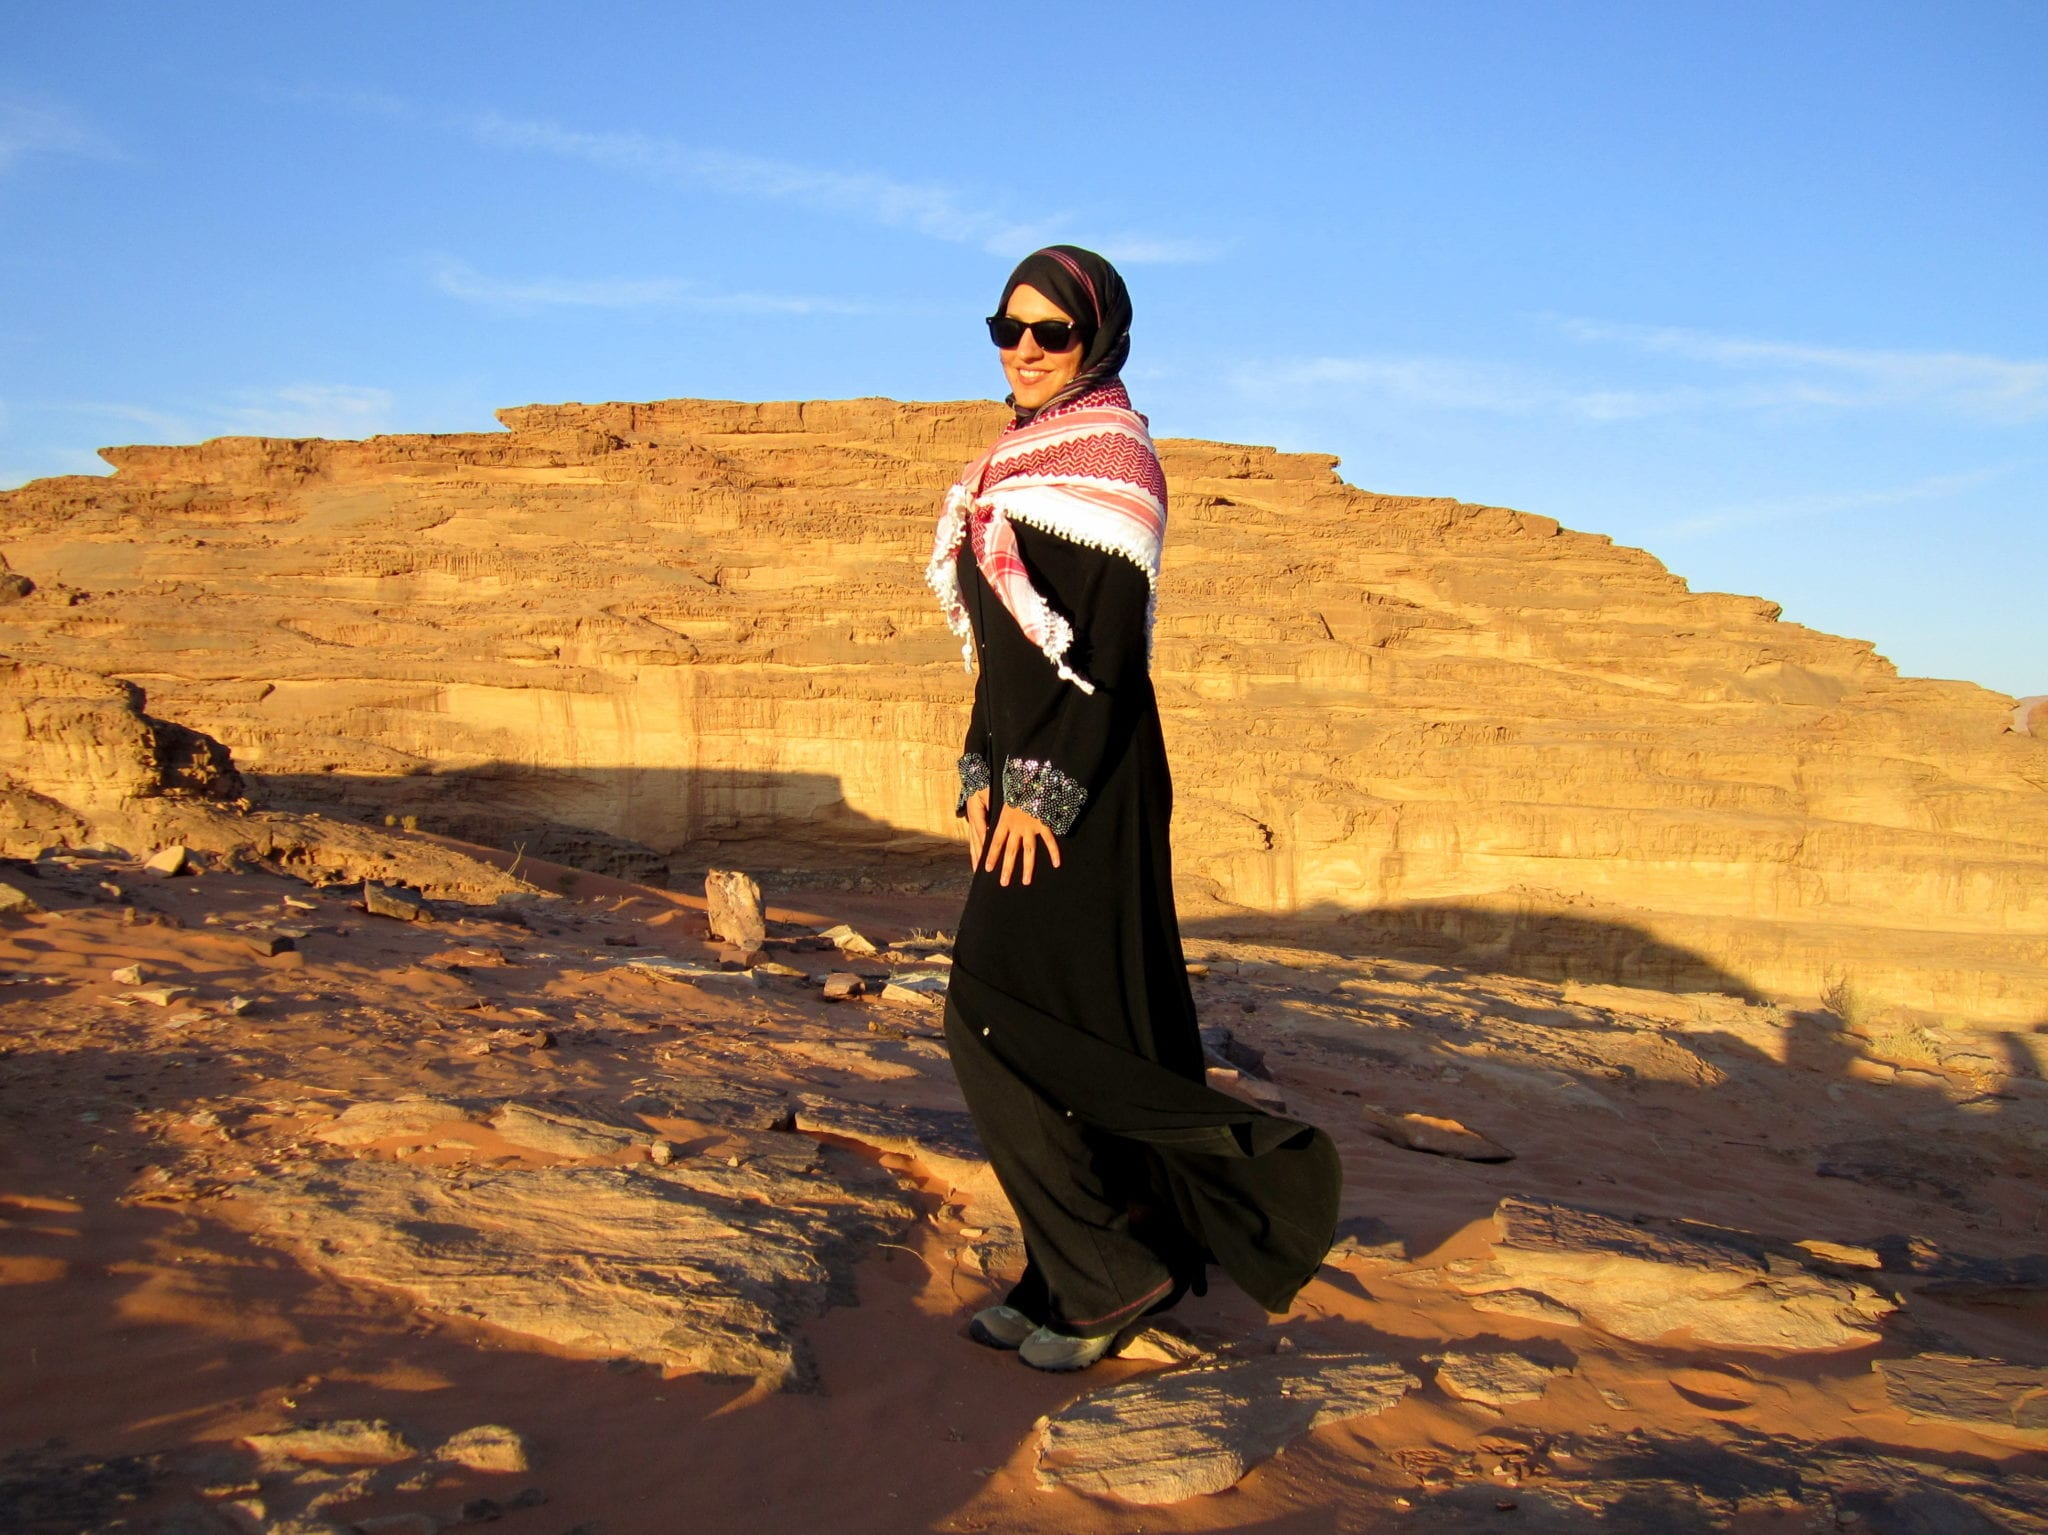 51d73d01c5 What Should Women Wear in Jordan? - Adventurous Kate : Adventurous Kate